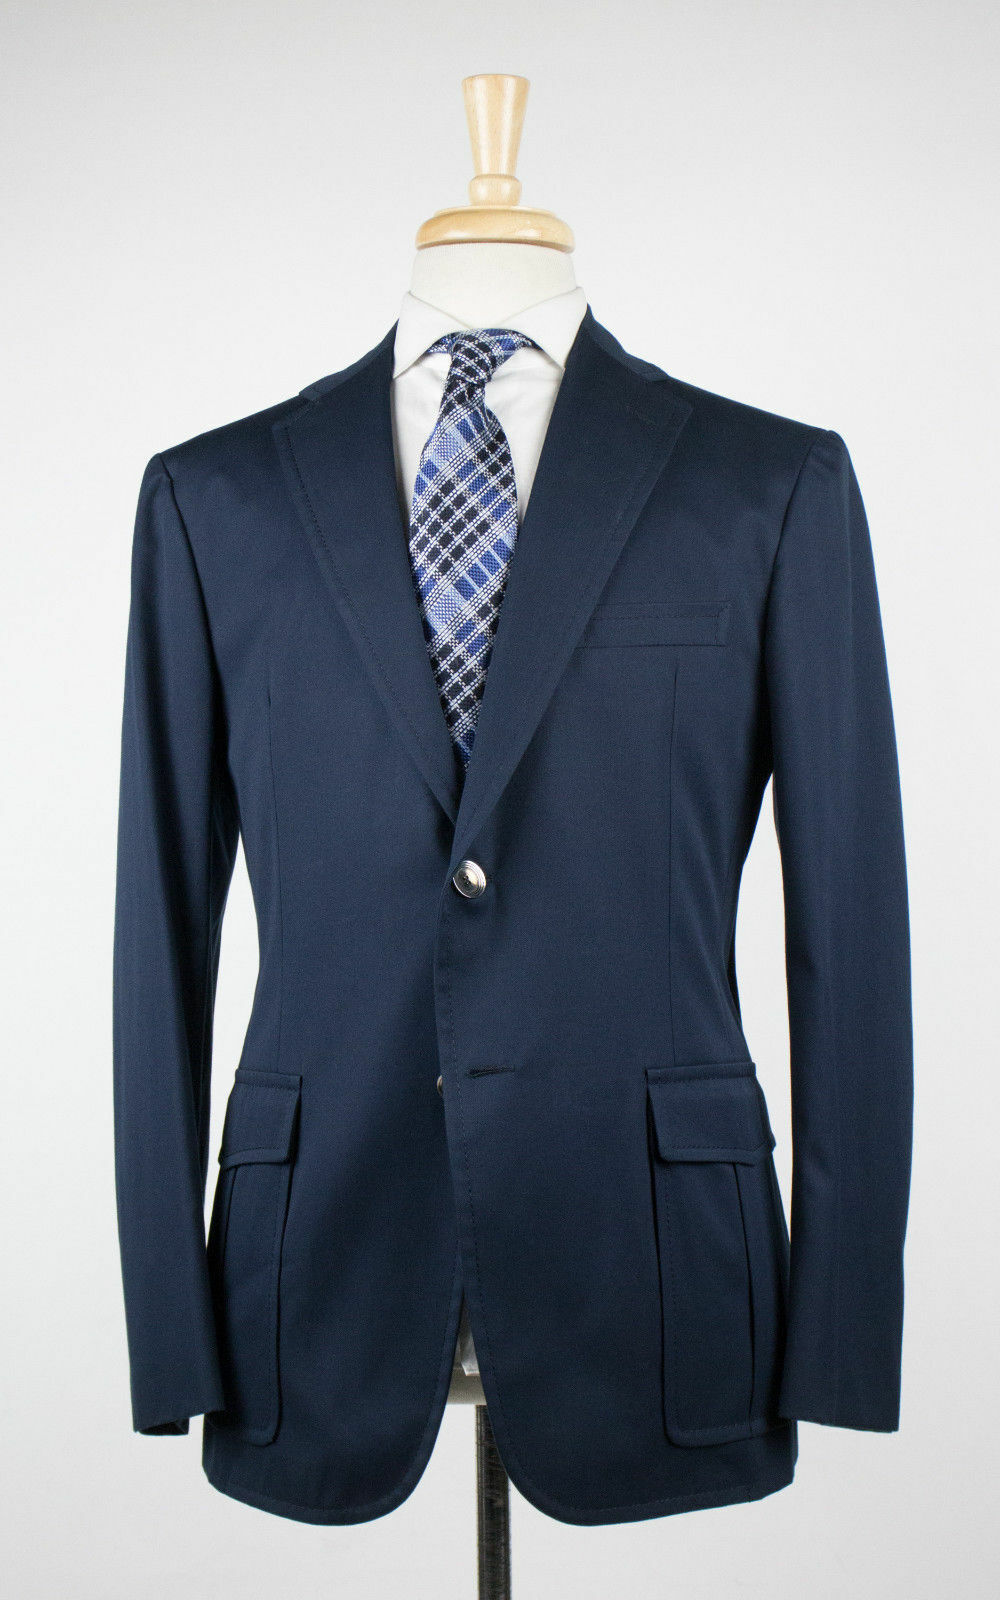 New D'AVENZA Forte Navy bluee Cotton 2 Button Sport Coat Blazer Size 50 40R